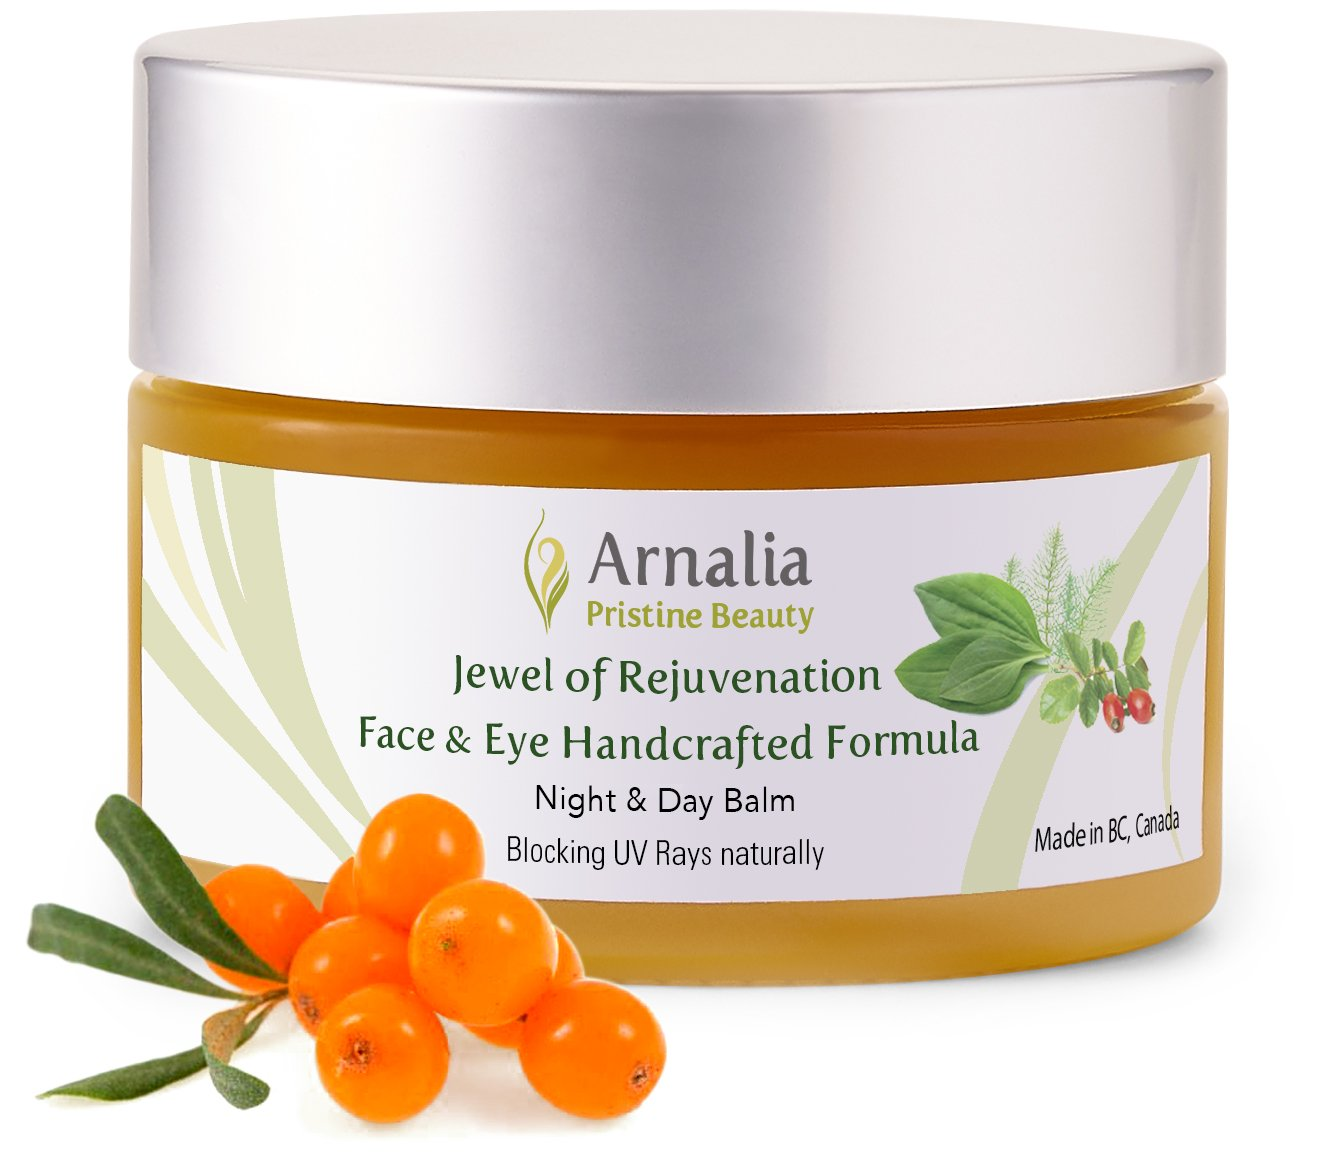 ARNALIA 100% Natural & Organic, Anti Wrinkle, Anti Aging Cream & Moisturizer - Cosmetics Skin Care Products, Best Eye & Face Care Balm for Wrinkles, Age Spots & All Skin Types - Wild Grown - (35ml)